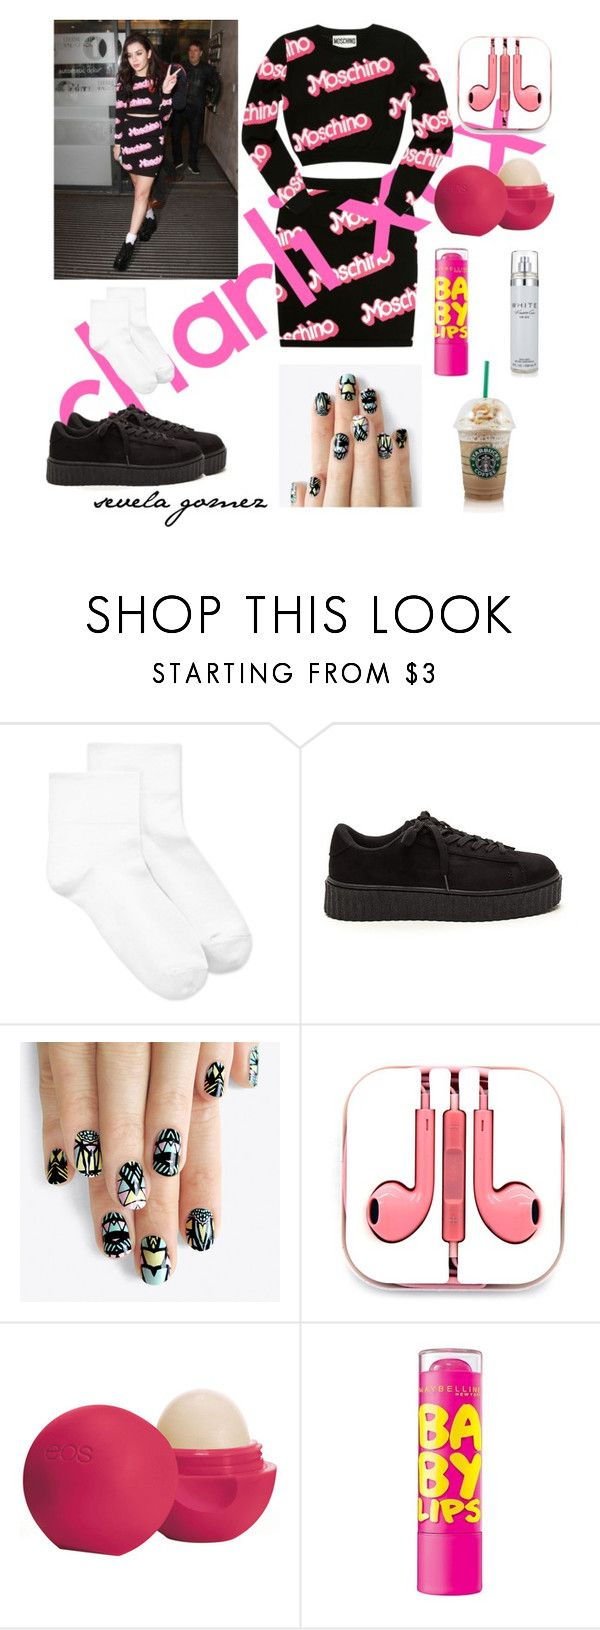 """Charli XCX"" by sequiagomez ❤ liked on Polyvore featuring Charli, Moschino, Hue, alfa.K, PhunkeeTree, Eos and Kenneth Cole"